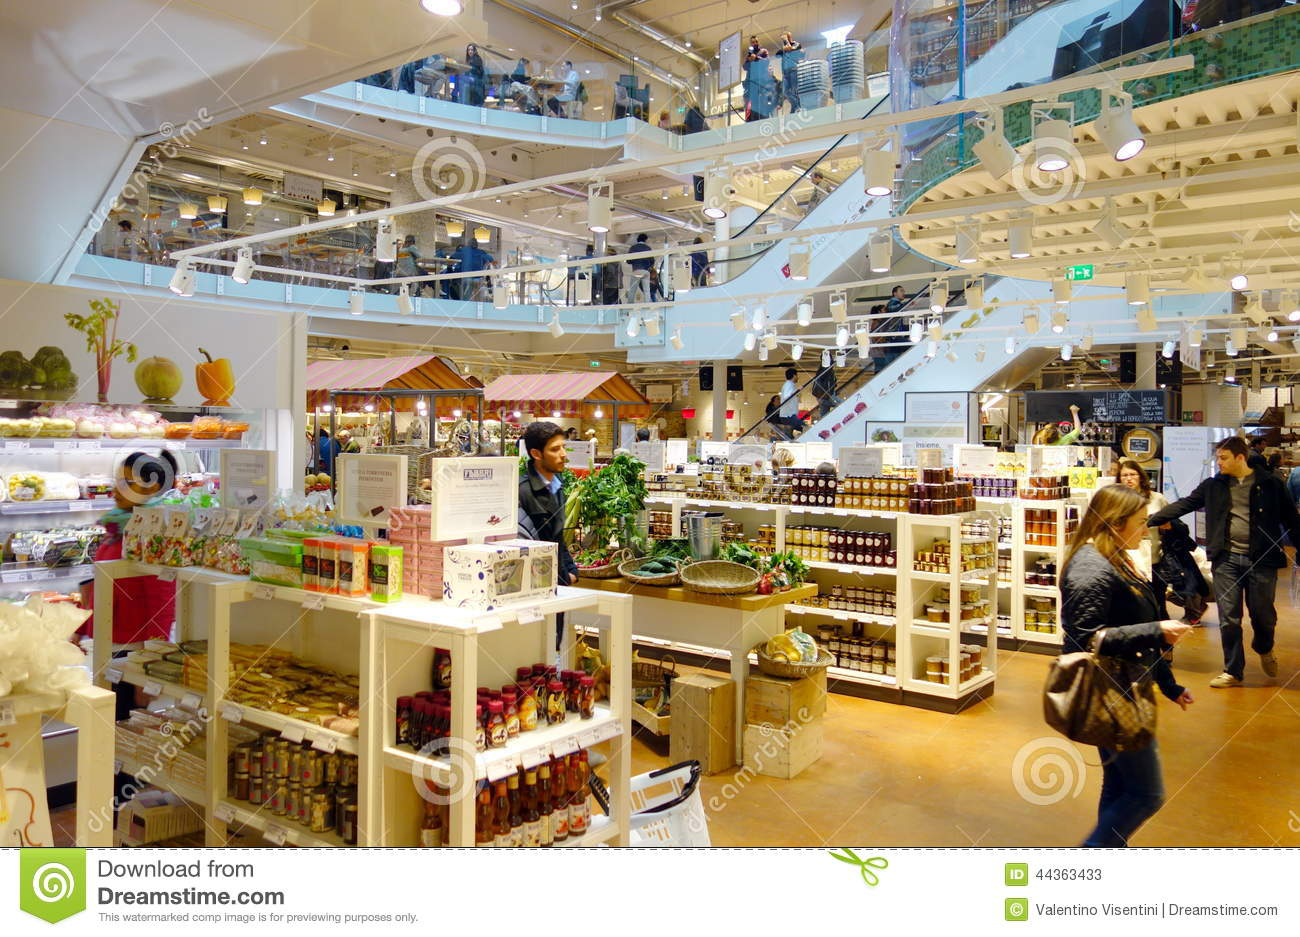 eataly-store-inside-one-famous-supermarkets-milan-italy-44363433.jpg